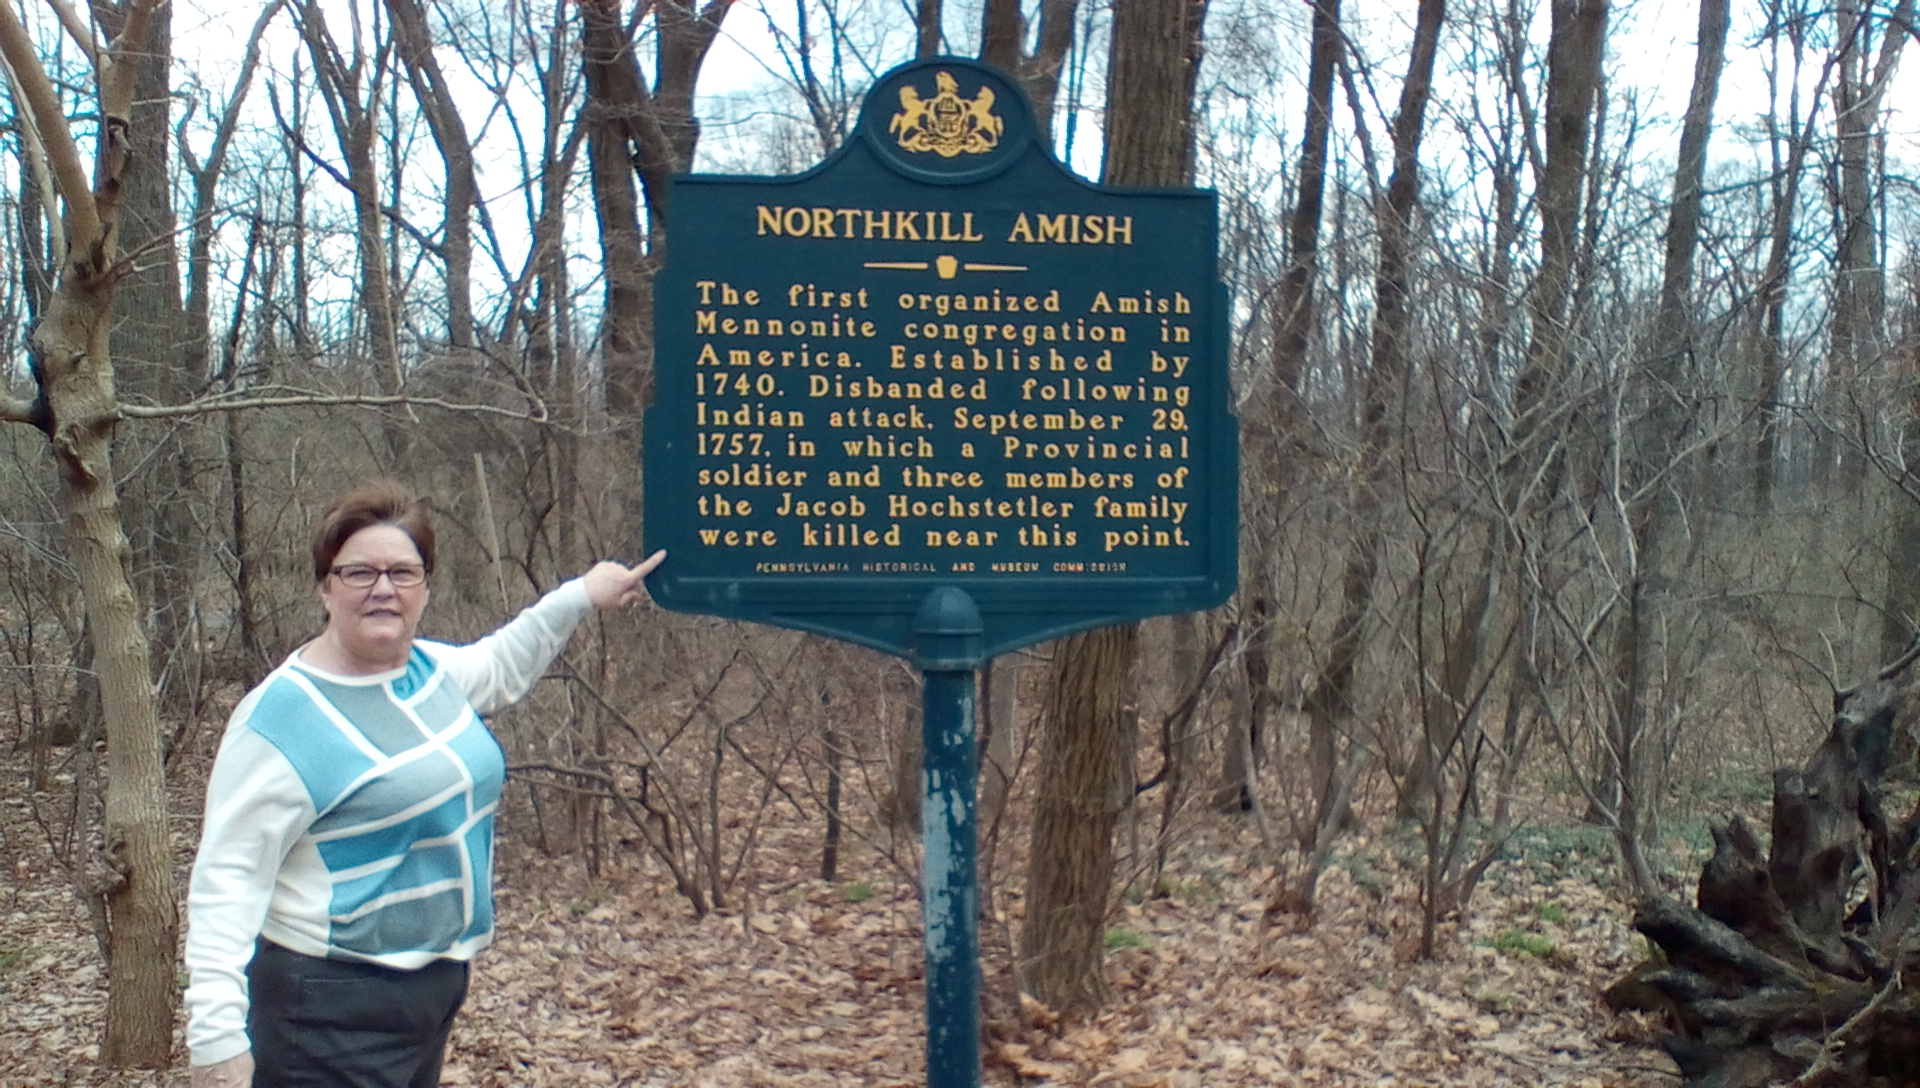 Susan Miller Pearce at PA historical markers, Shartlesville (2016)